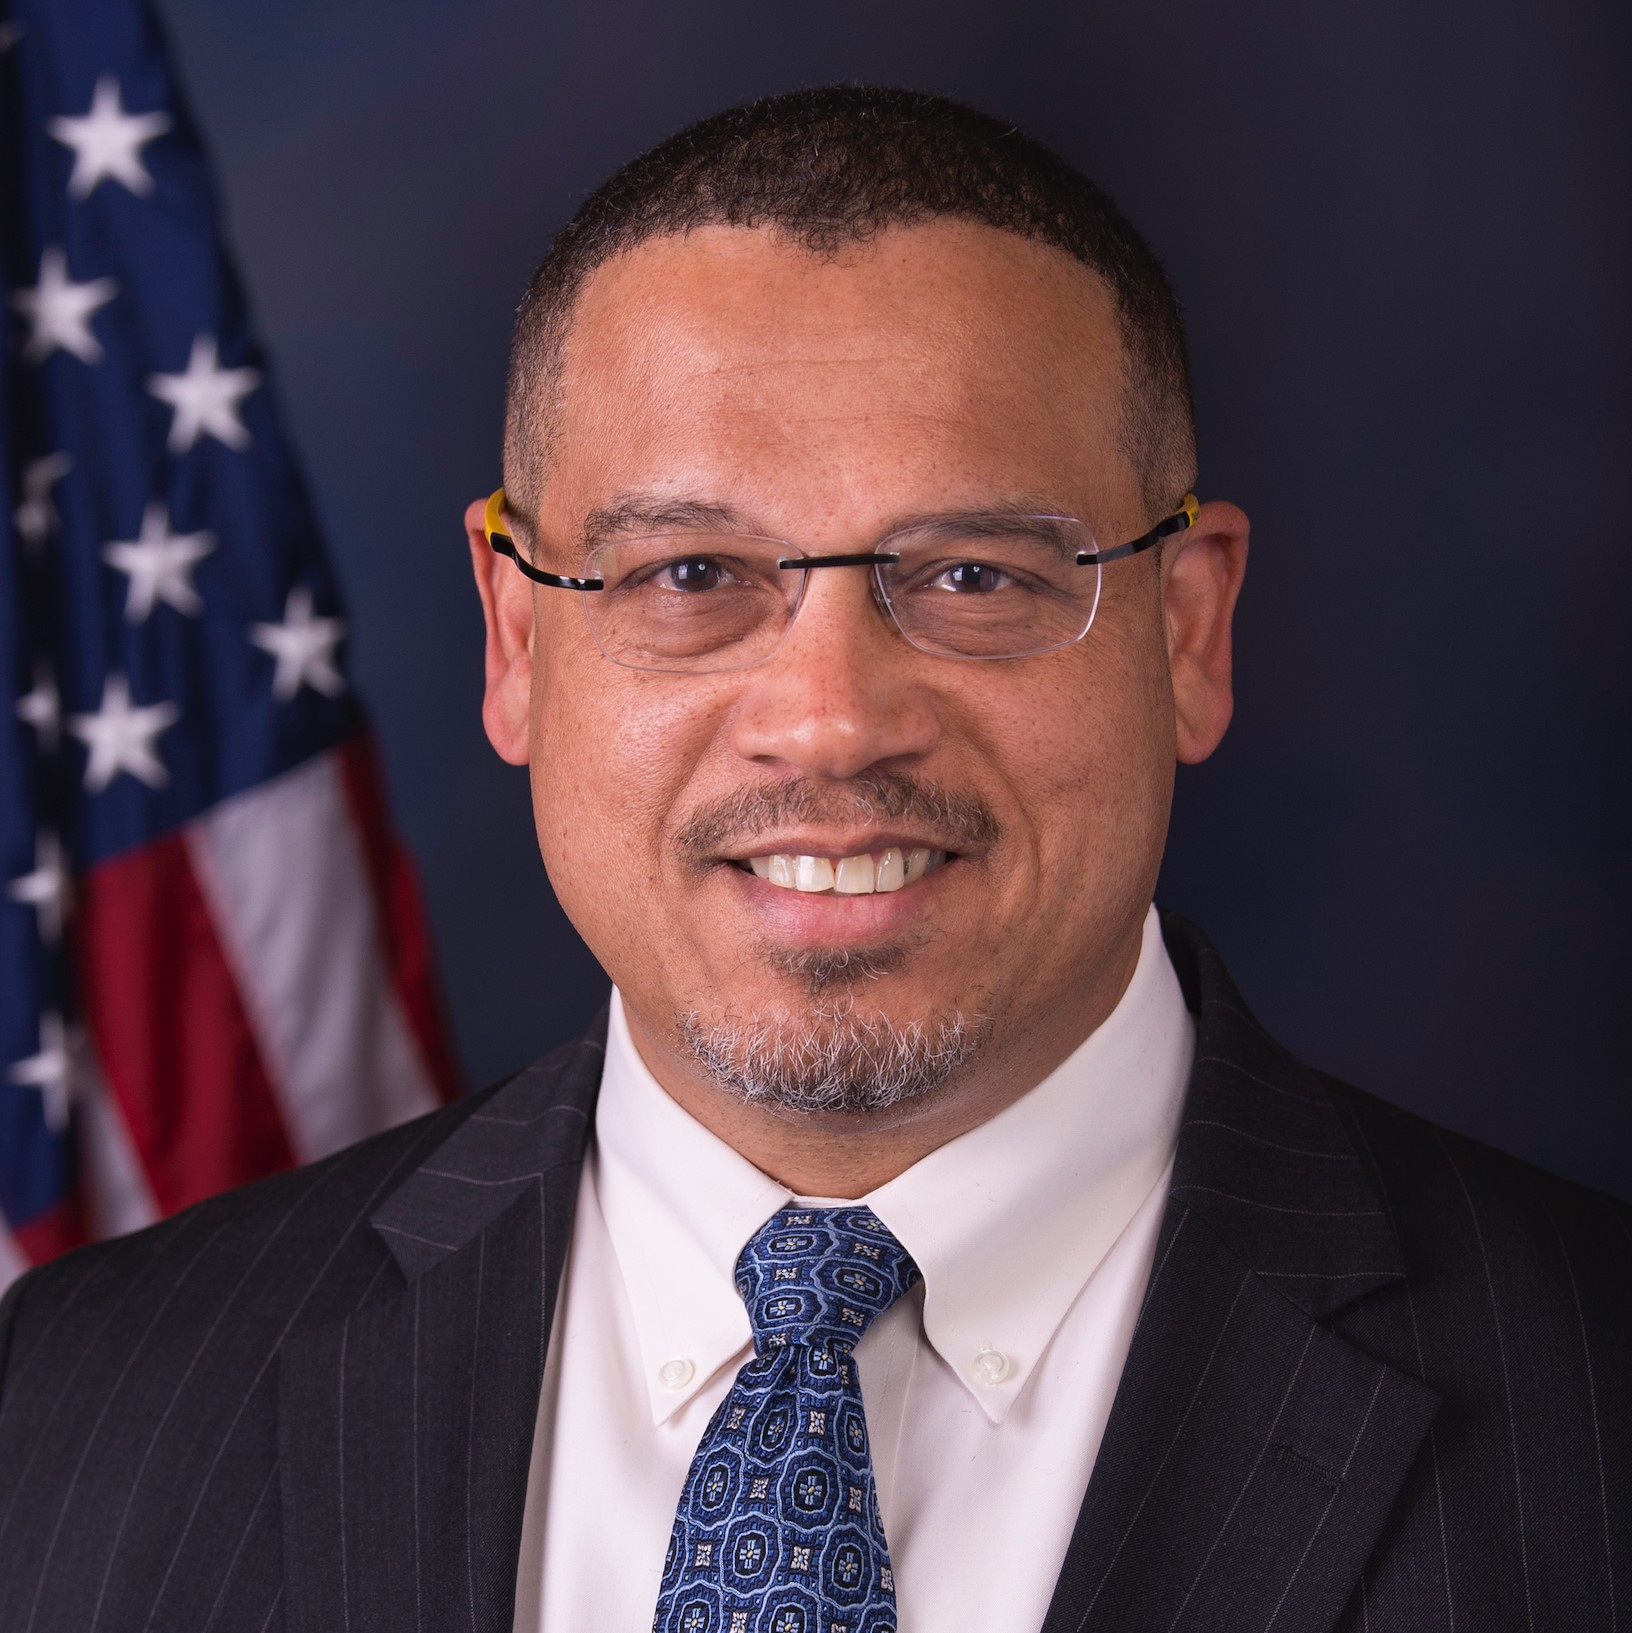 Keith Ellison's headshot.'